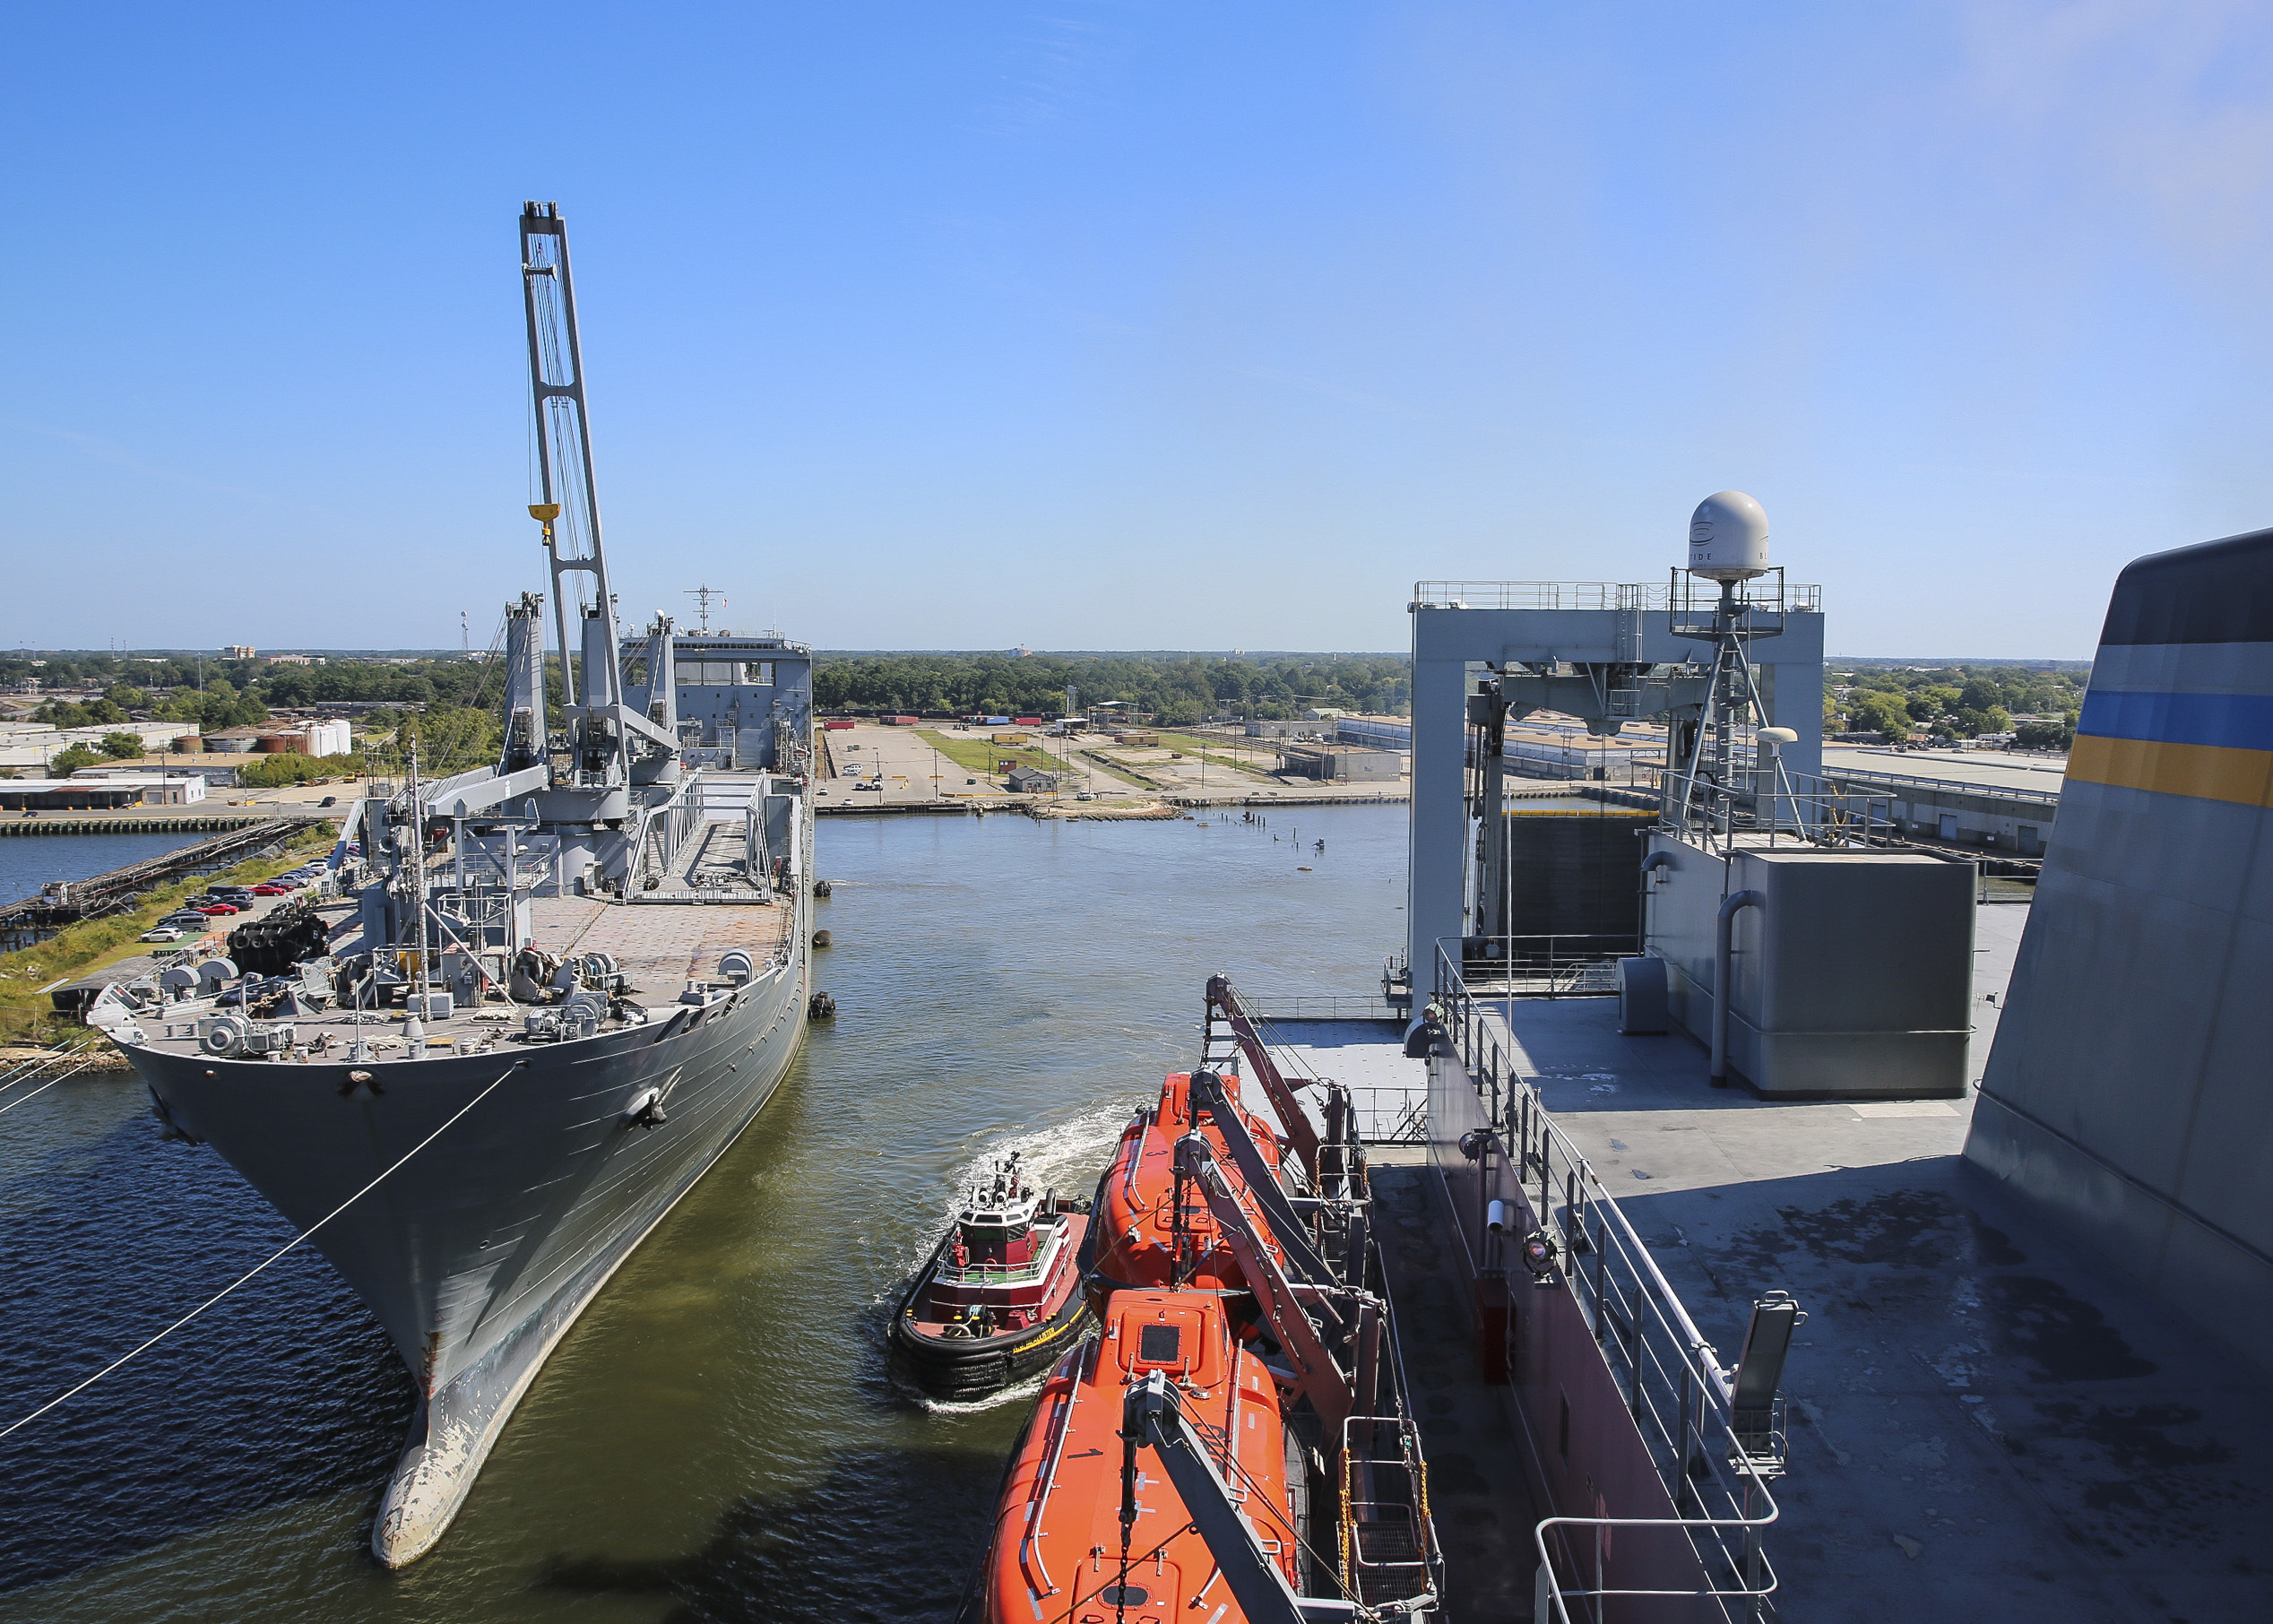 TRANSCOM Stress Test Practiced Cargo Delivery Through Mine- and Sub-Filled Waters - USNI News